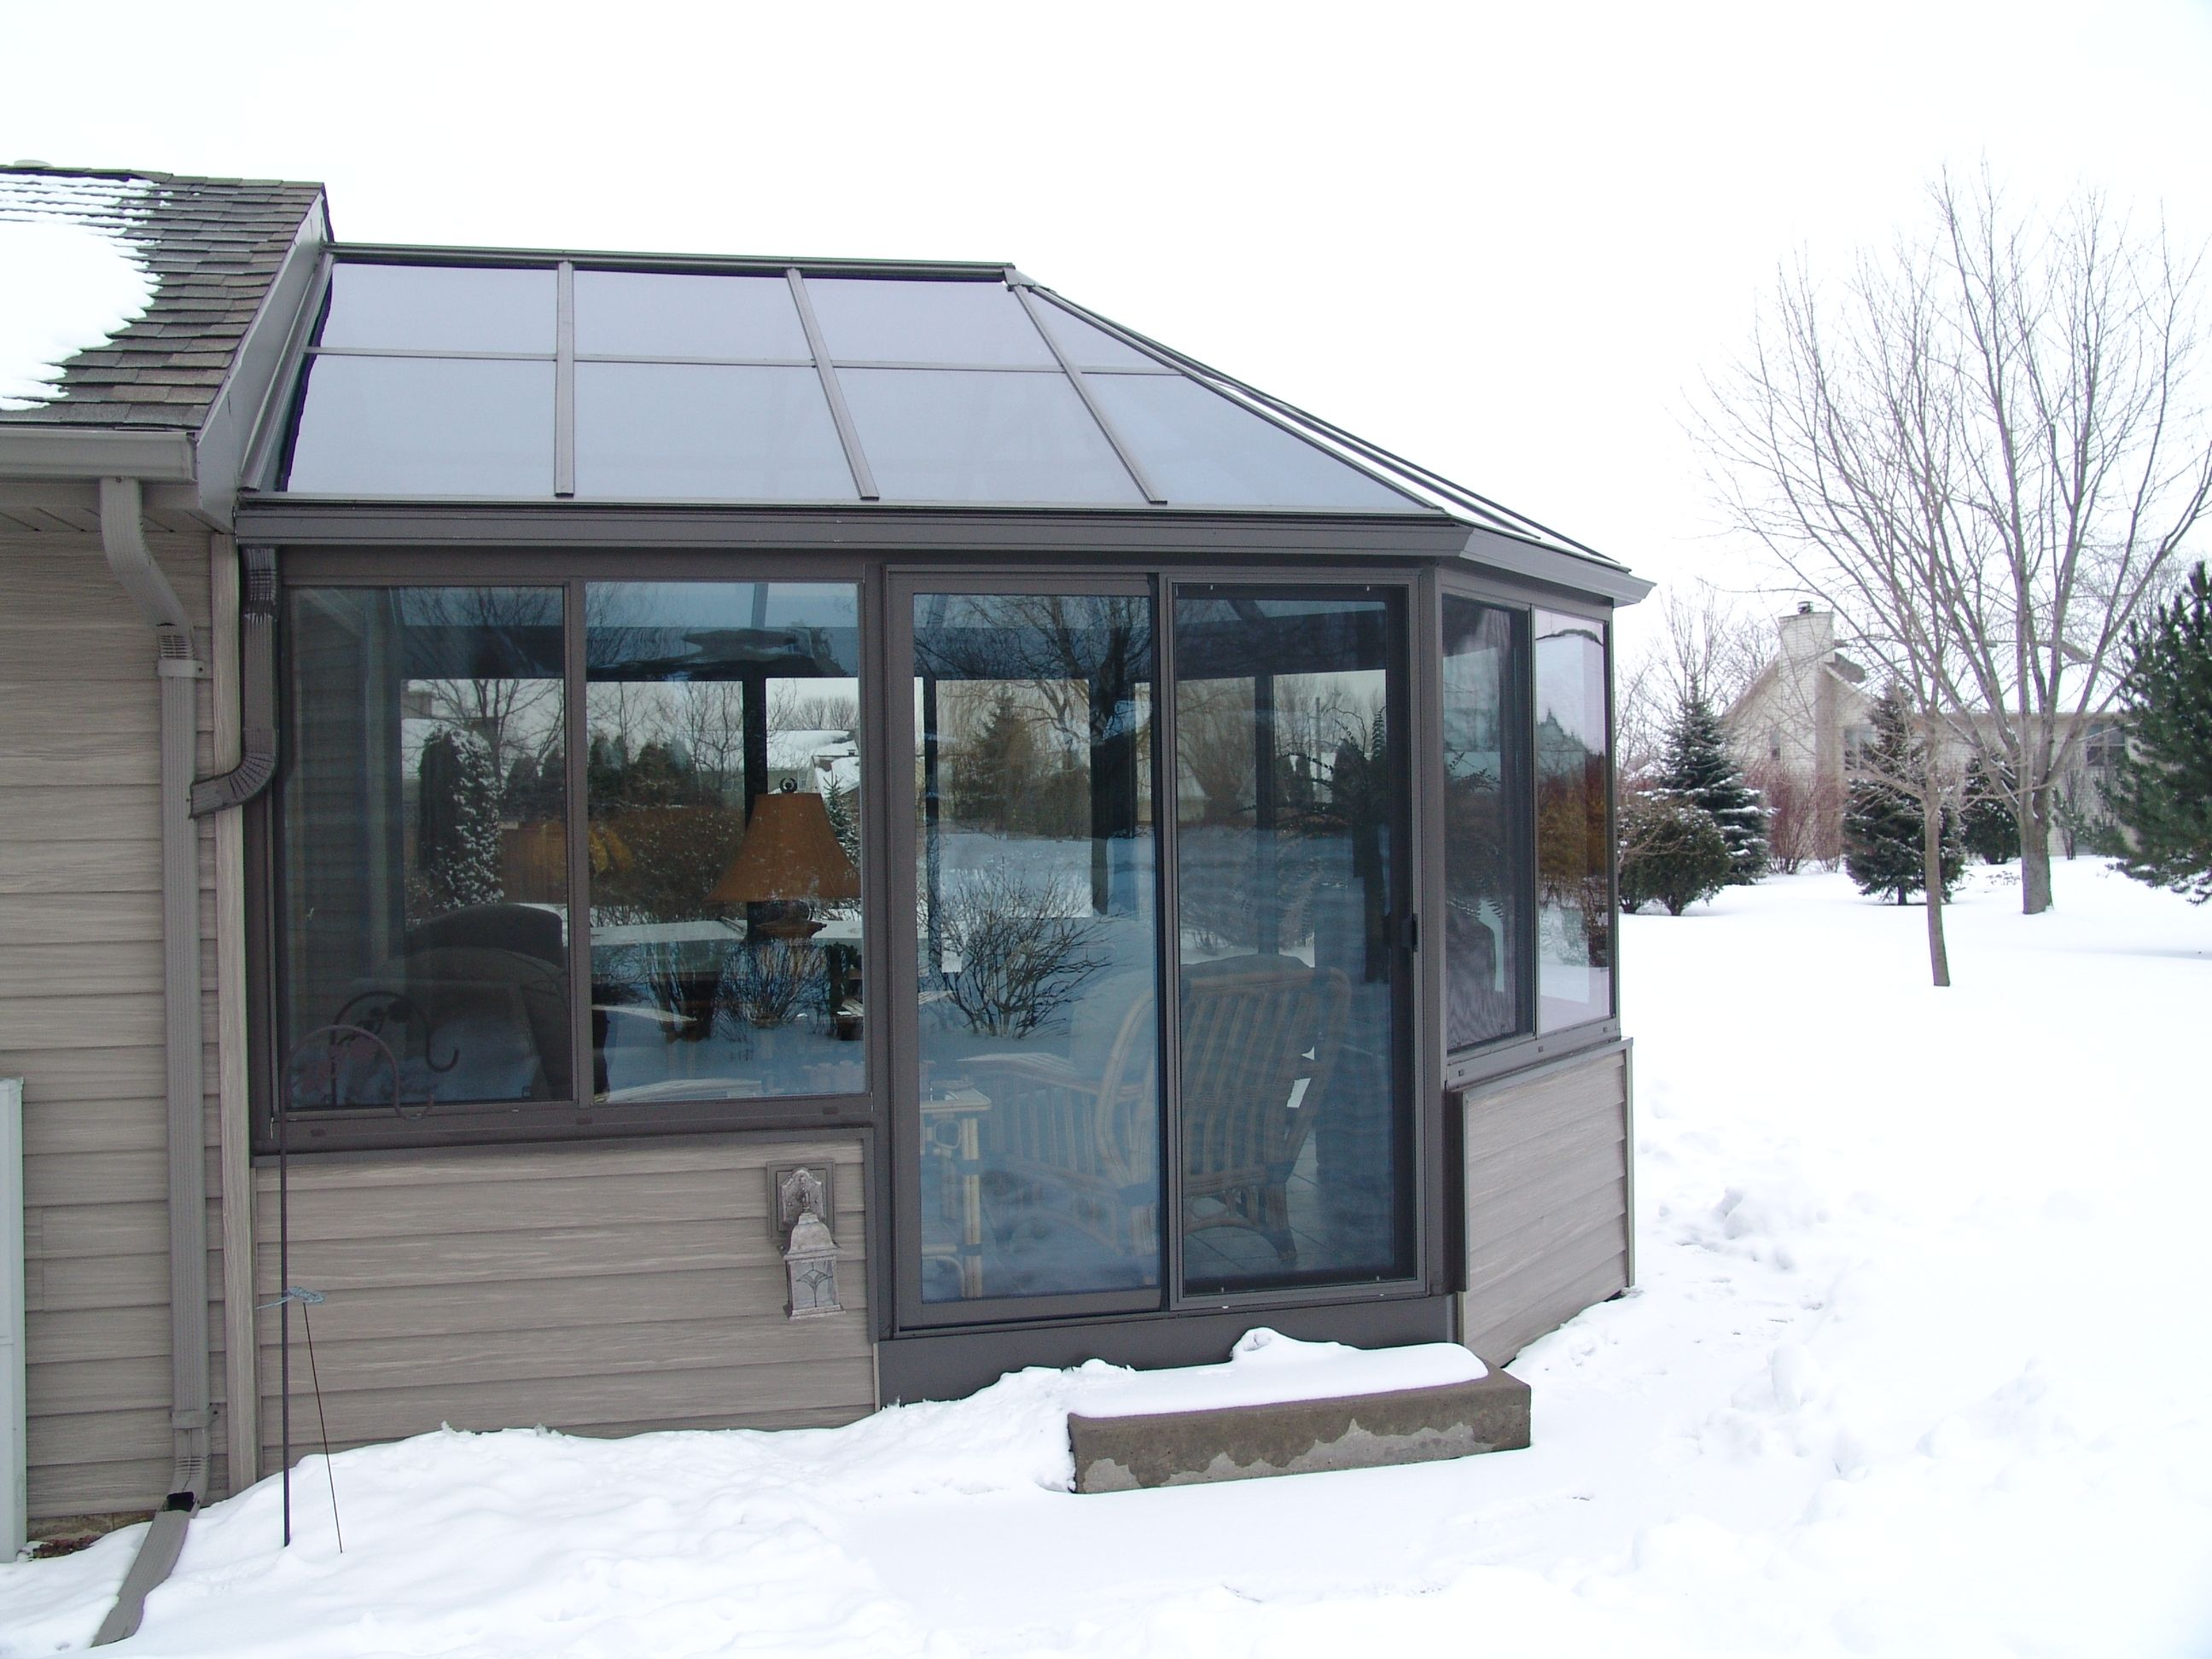 Victorian Sunroom Keeping The Snow Off Will Keep Your View Clear And The Roof Will Have Fewer Issues As The Room Ages Glass Roof Sunroom Sunroom Construction